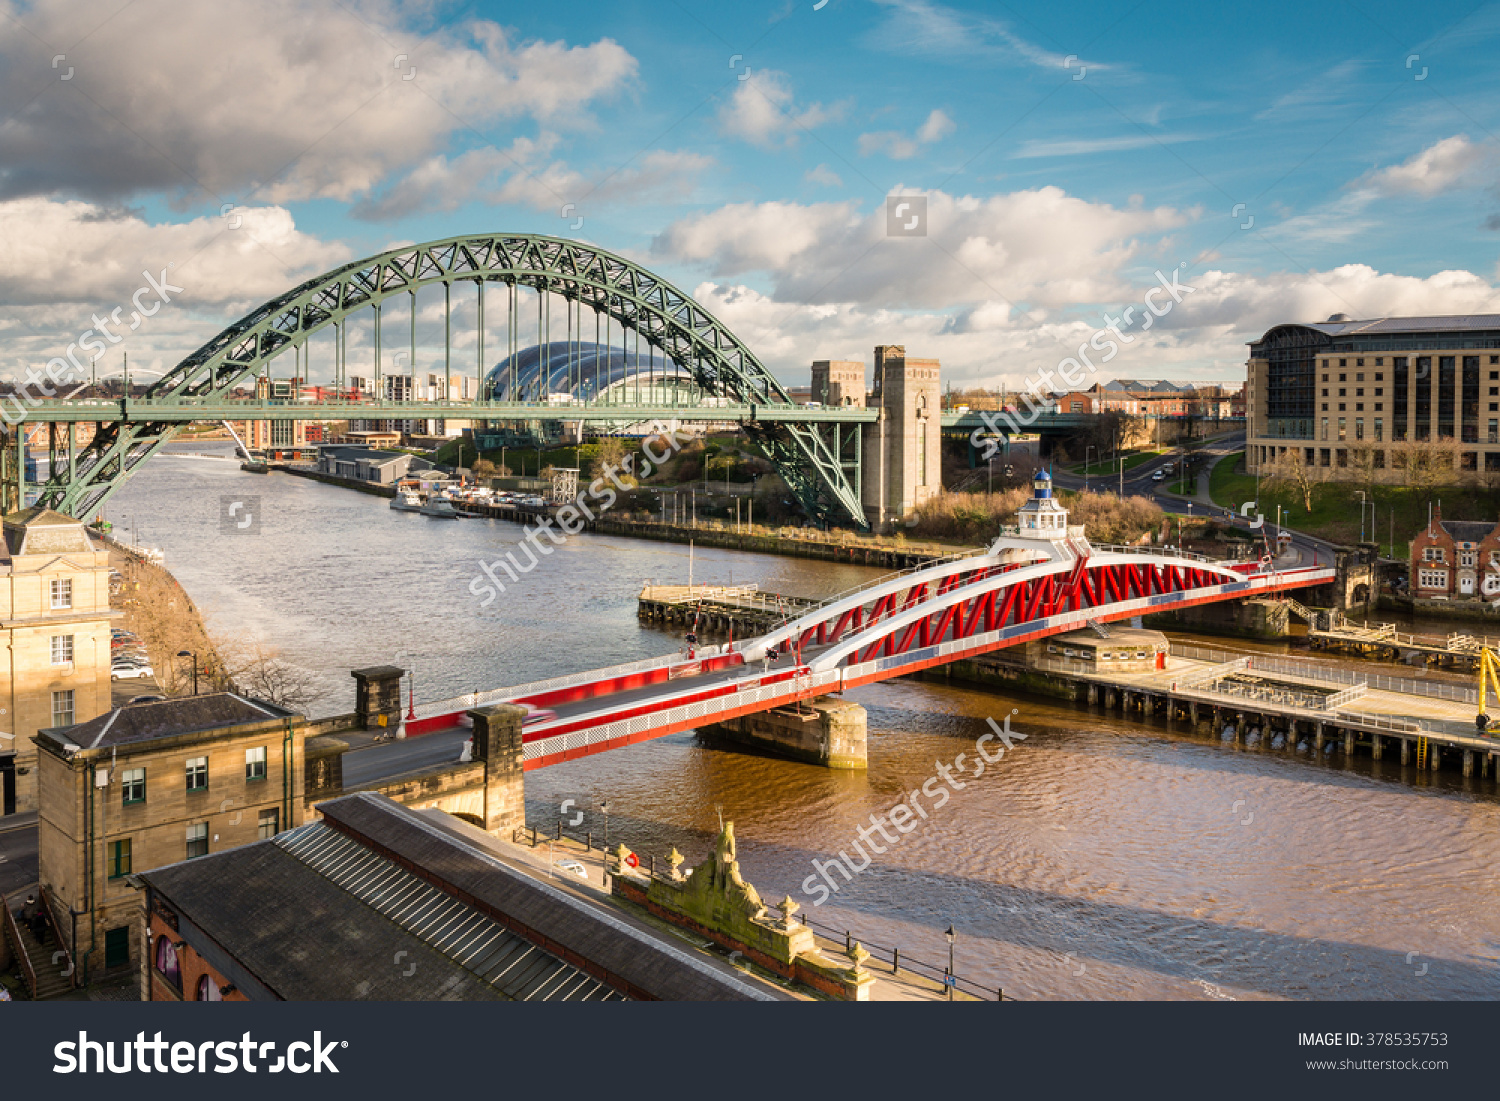 Tyne Swing Bridges Above Iconic Bridges Stock Photo 378535753.